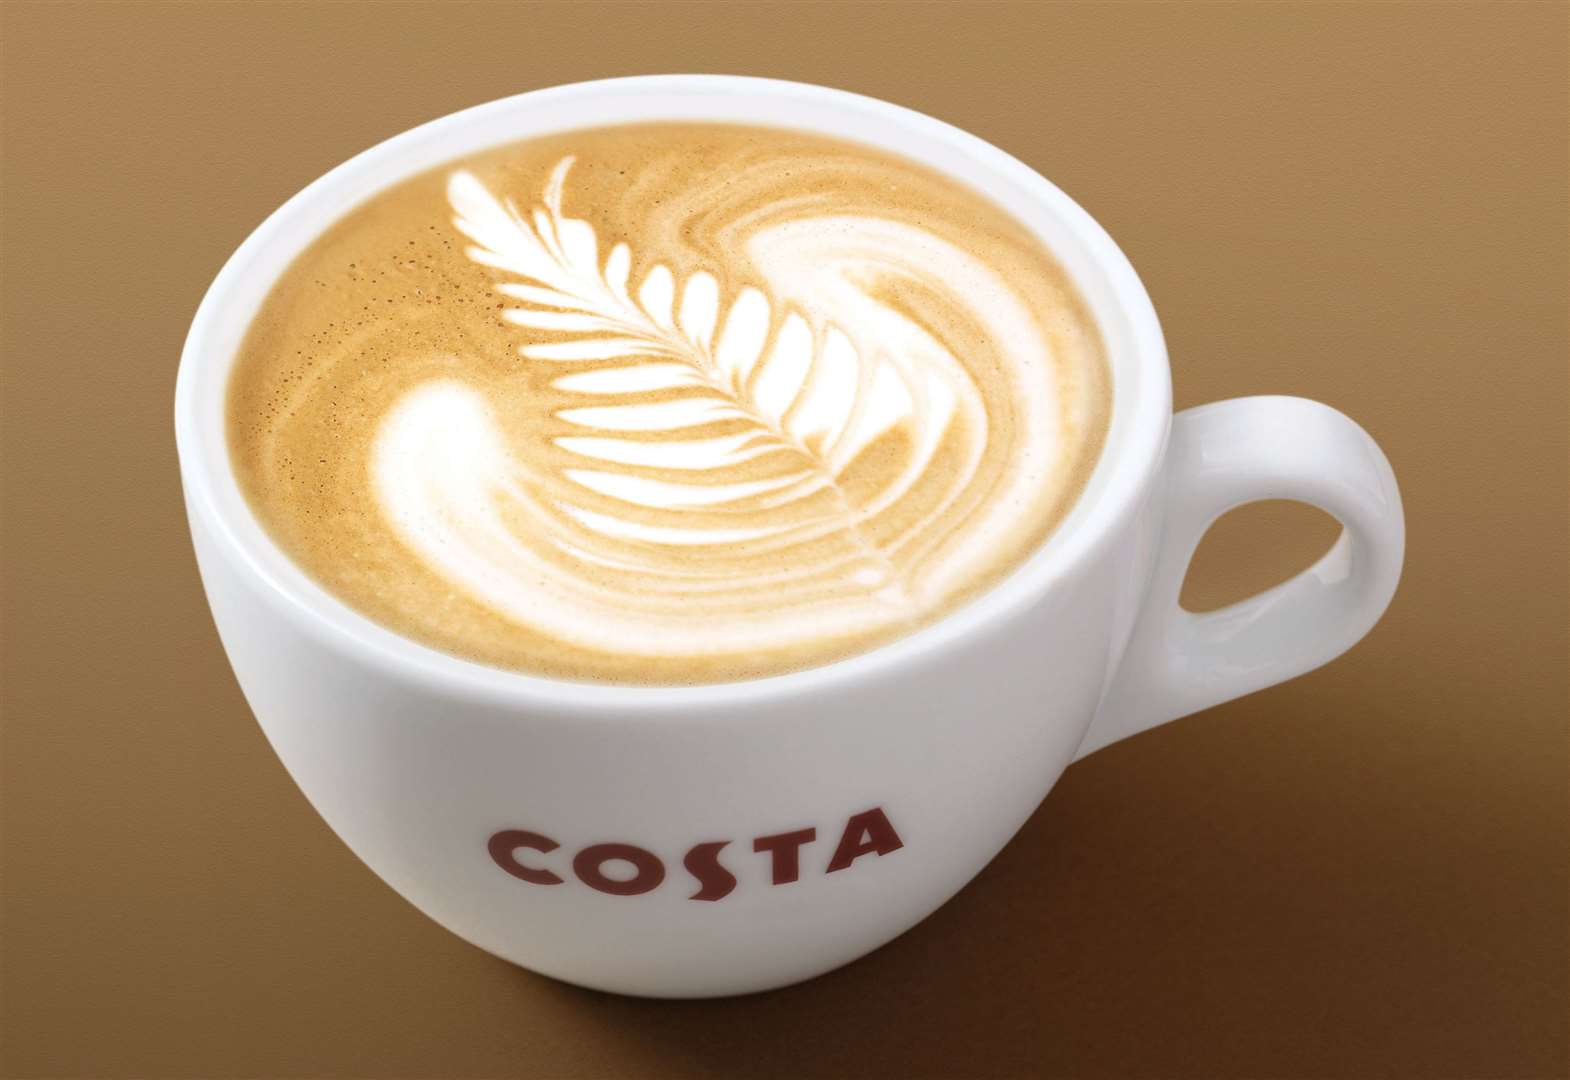 Costa confirms when it plans to open new drive-thru at Necton